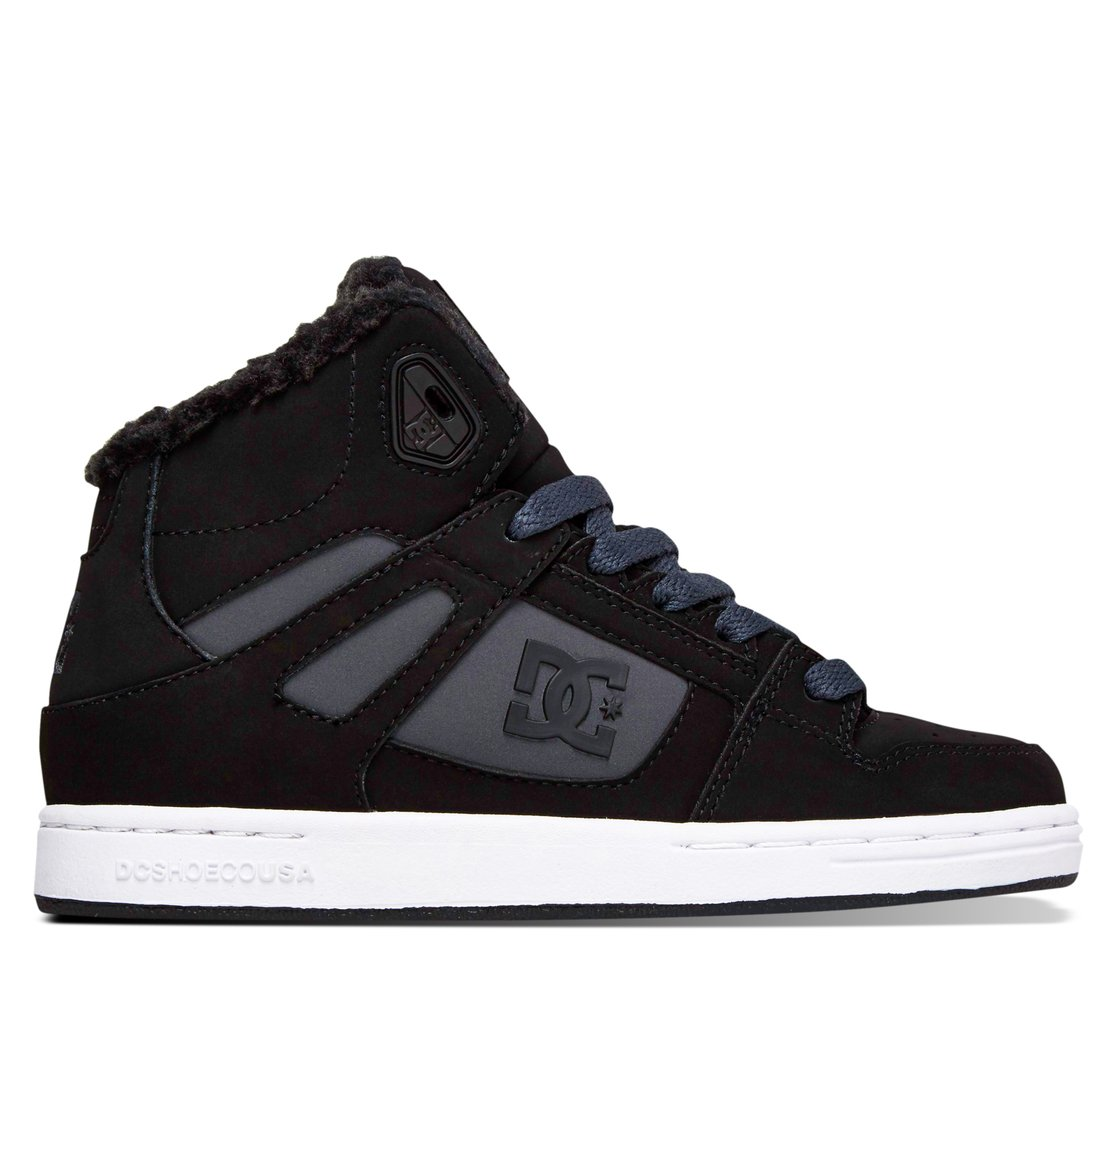 dcshoes, , BLACK/CHARCOAL (bcg